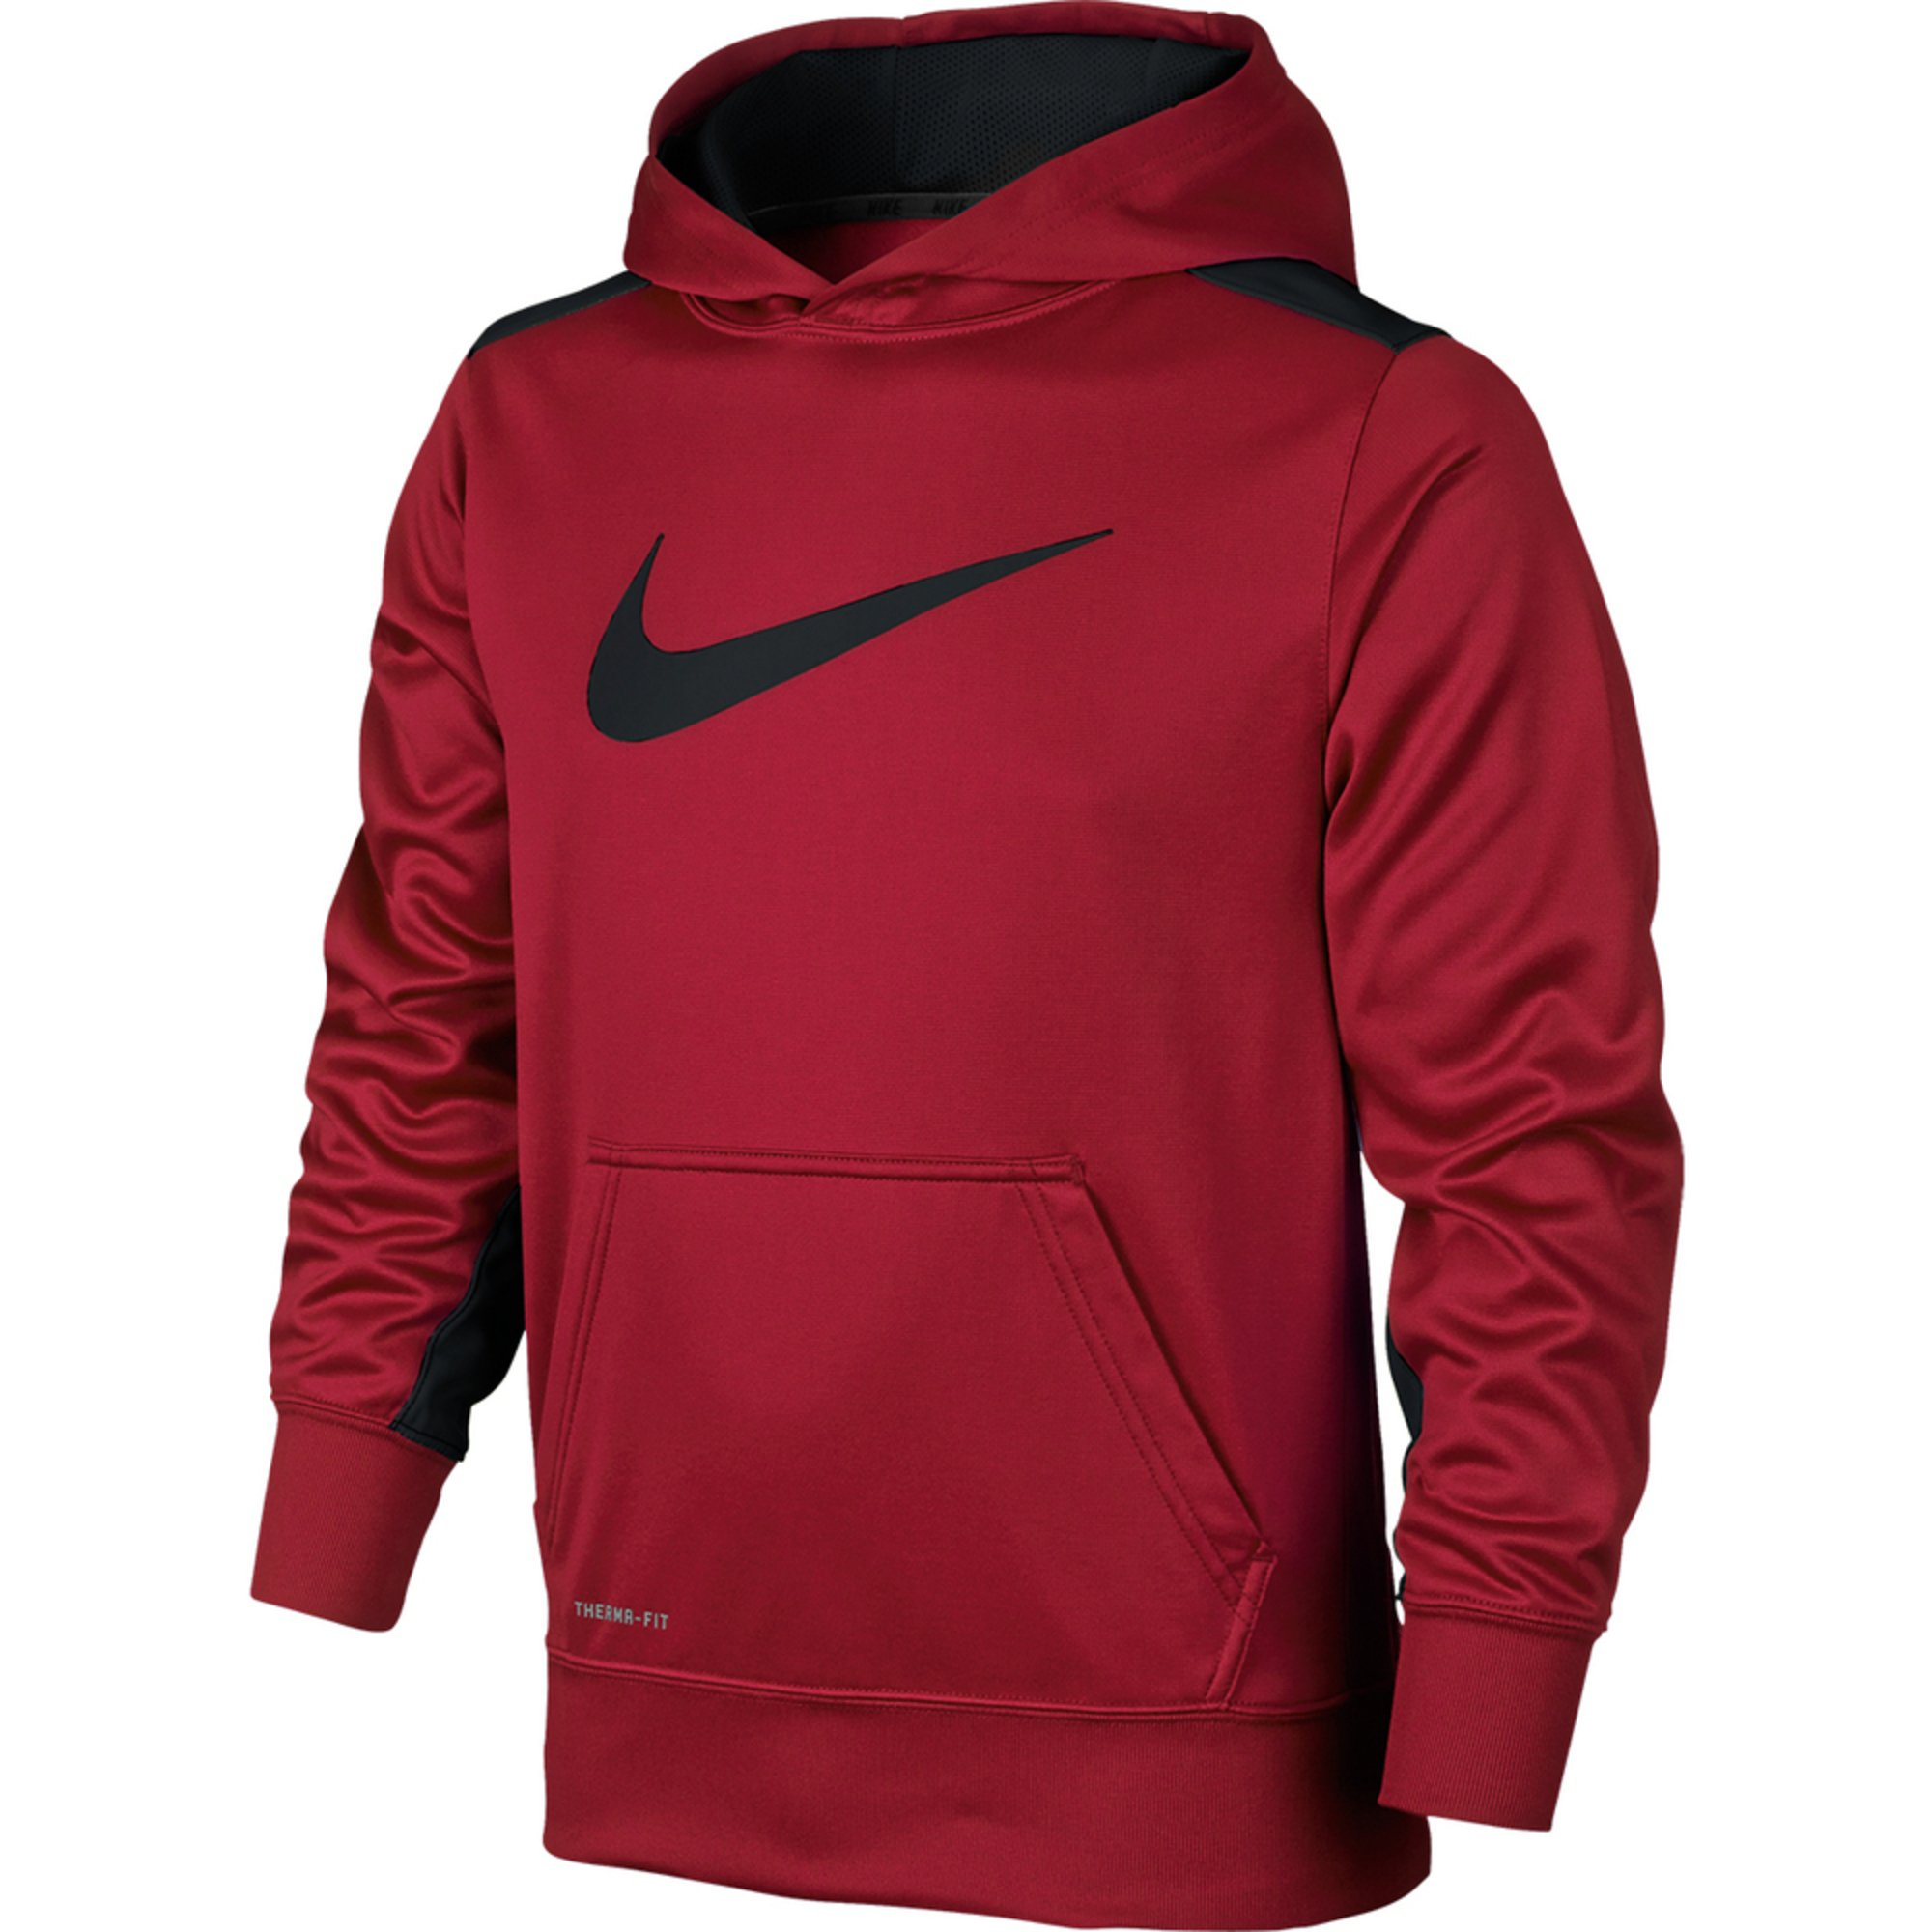 Nike Big Boys' Ko 3.0 Hoodie, Gym Red | Big Boys' Hoodies ...